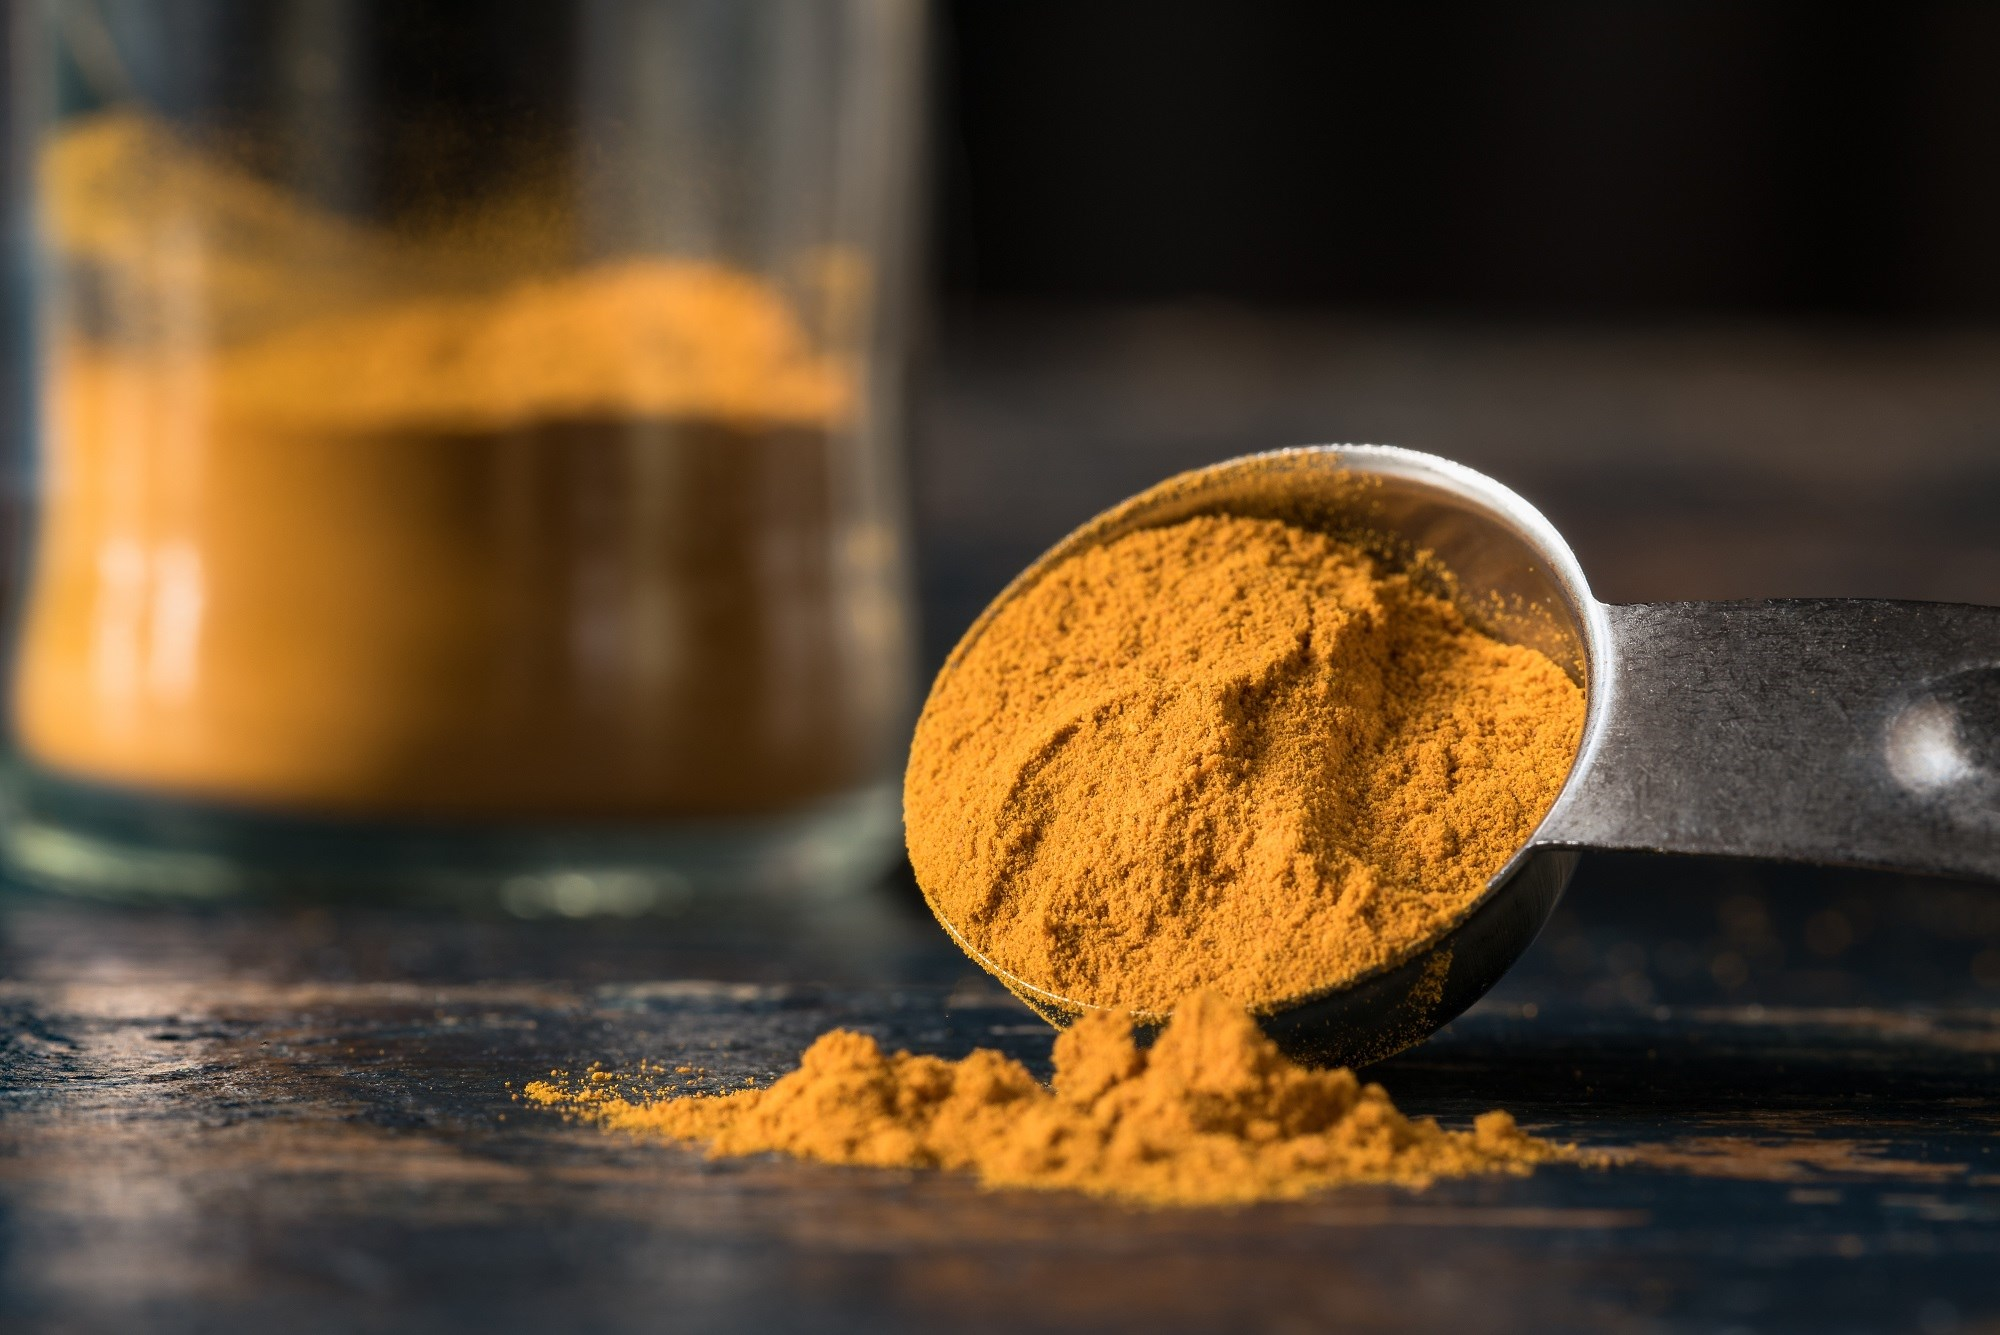 Home Remedies, Spices Associated With Elevated Blood Lead Levels in Children